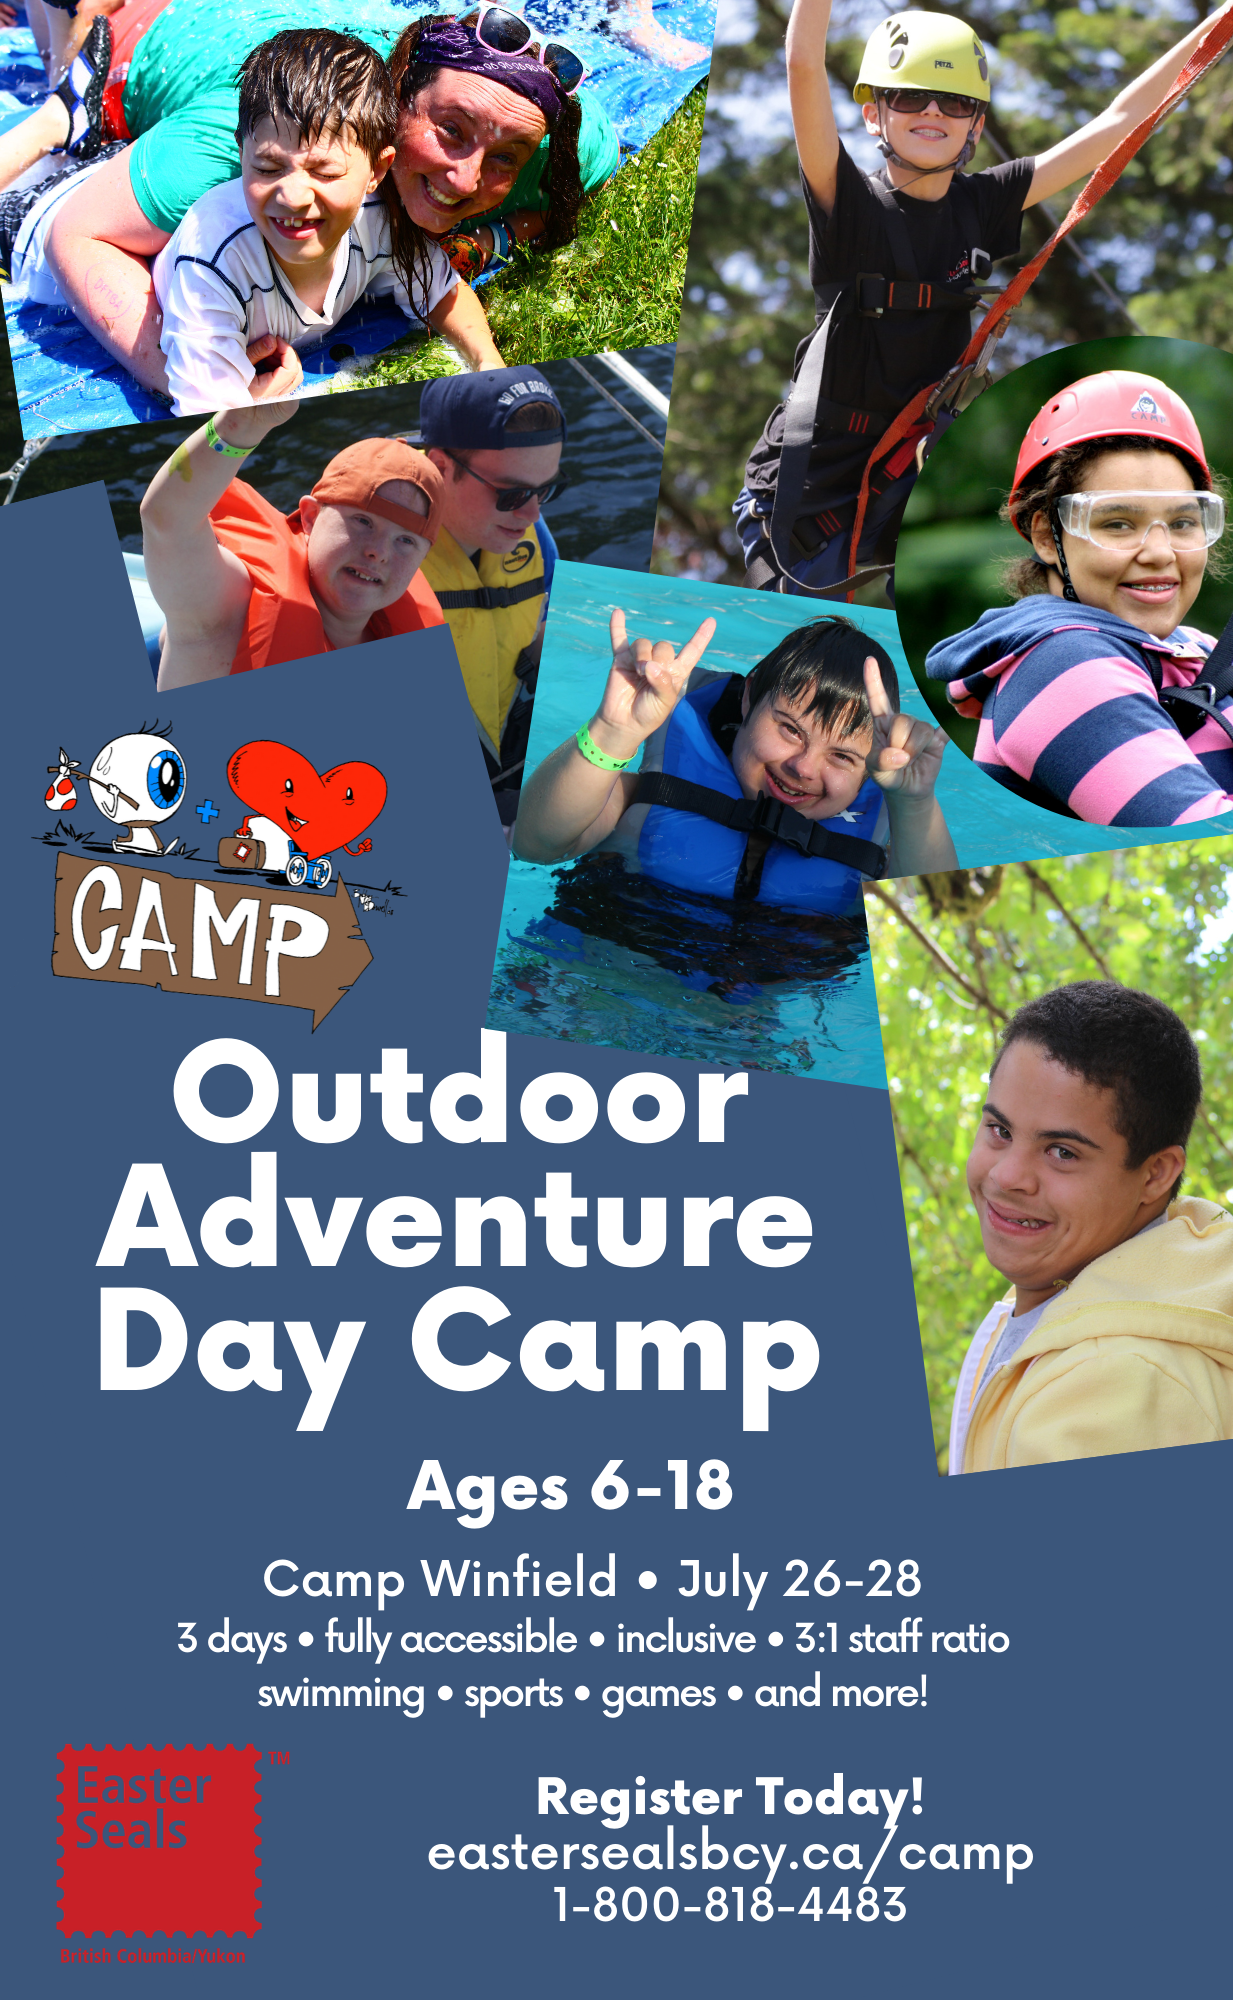 Outdoor Adventure Day Camp - 3 Days (Ages 6-18)